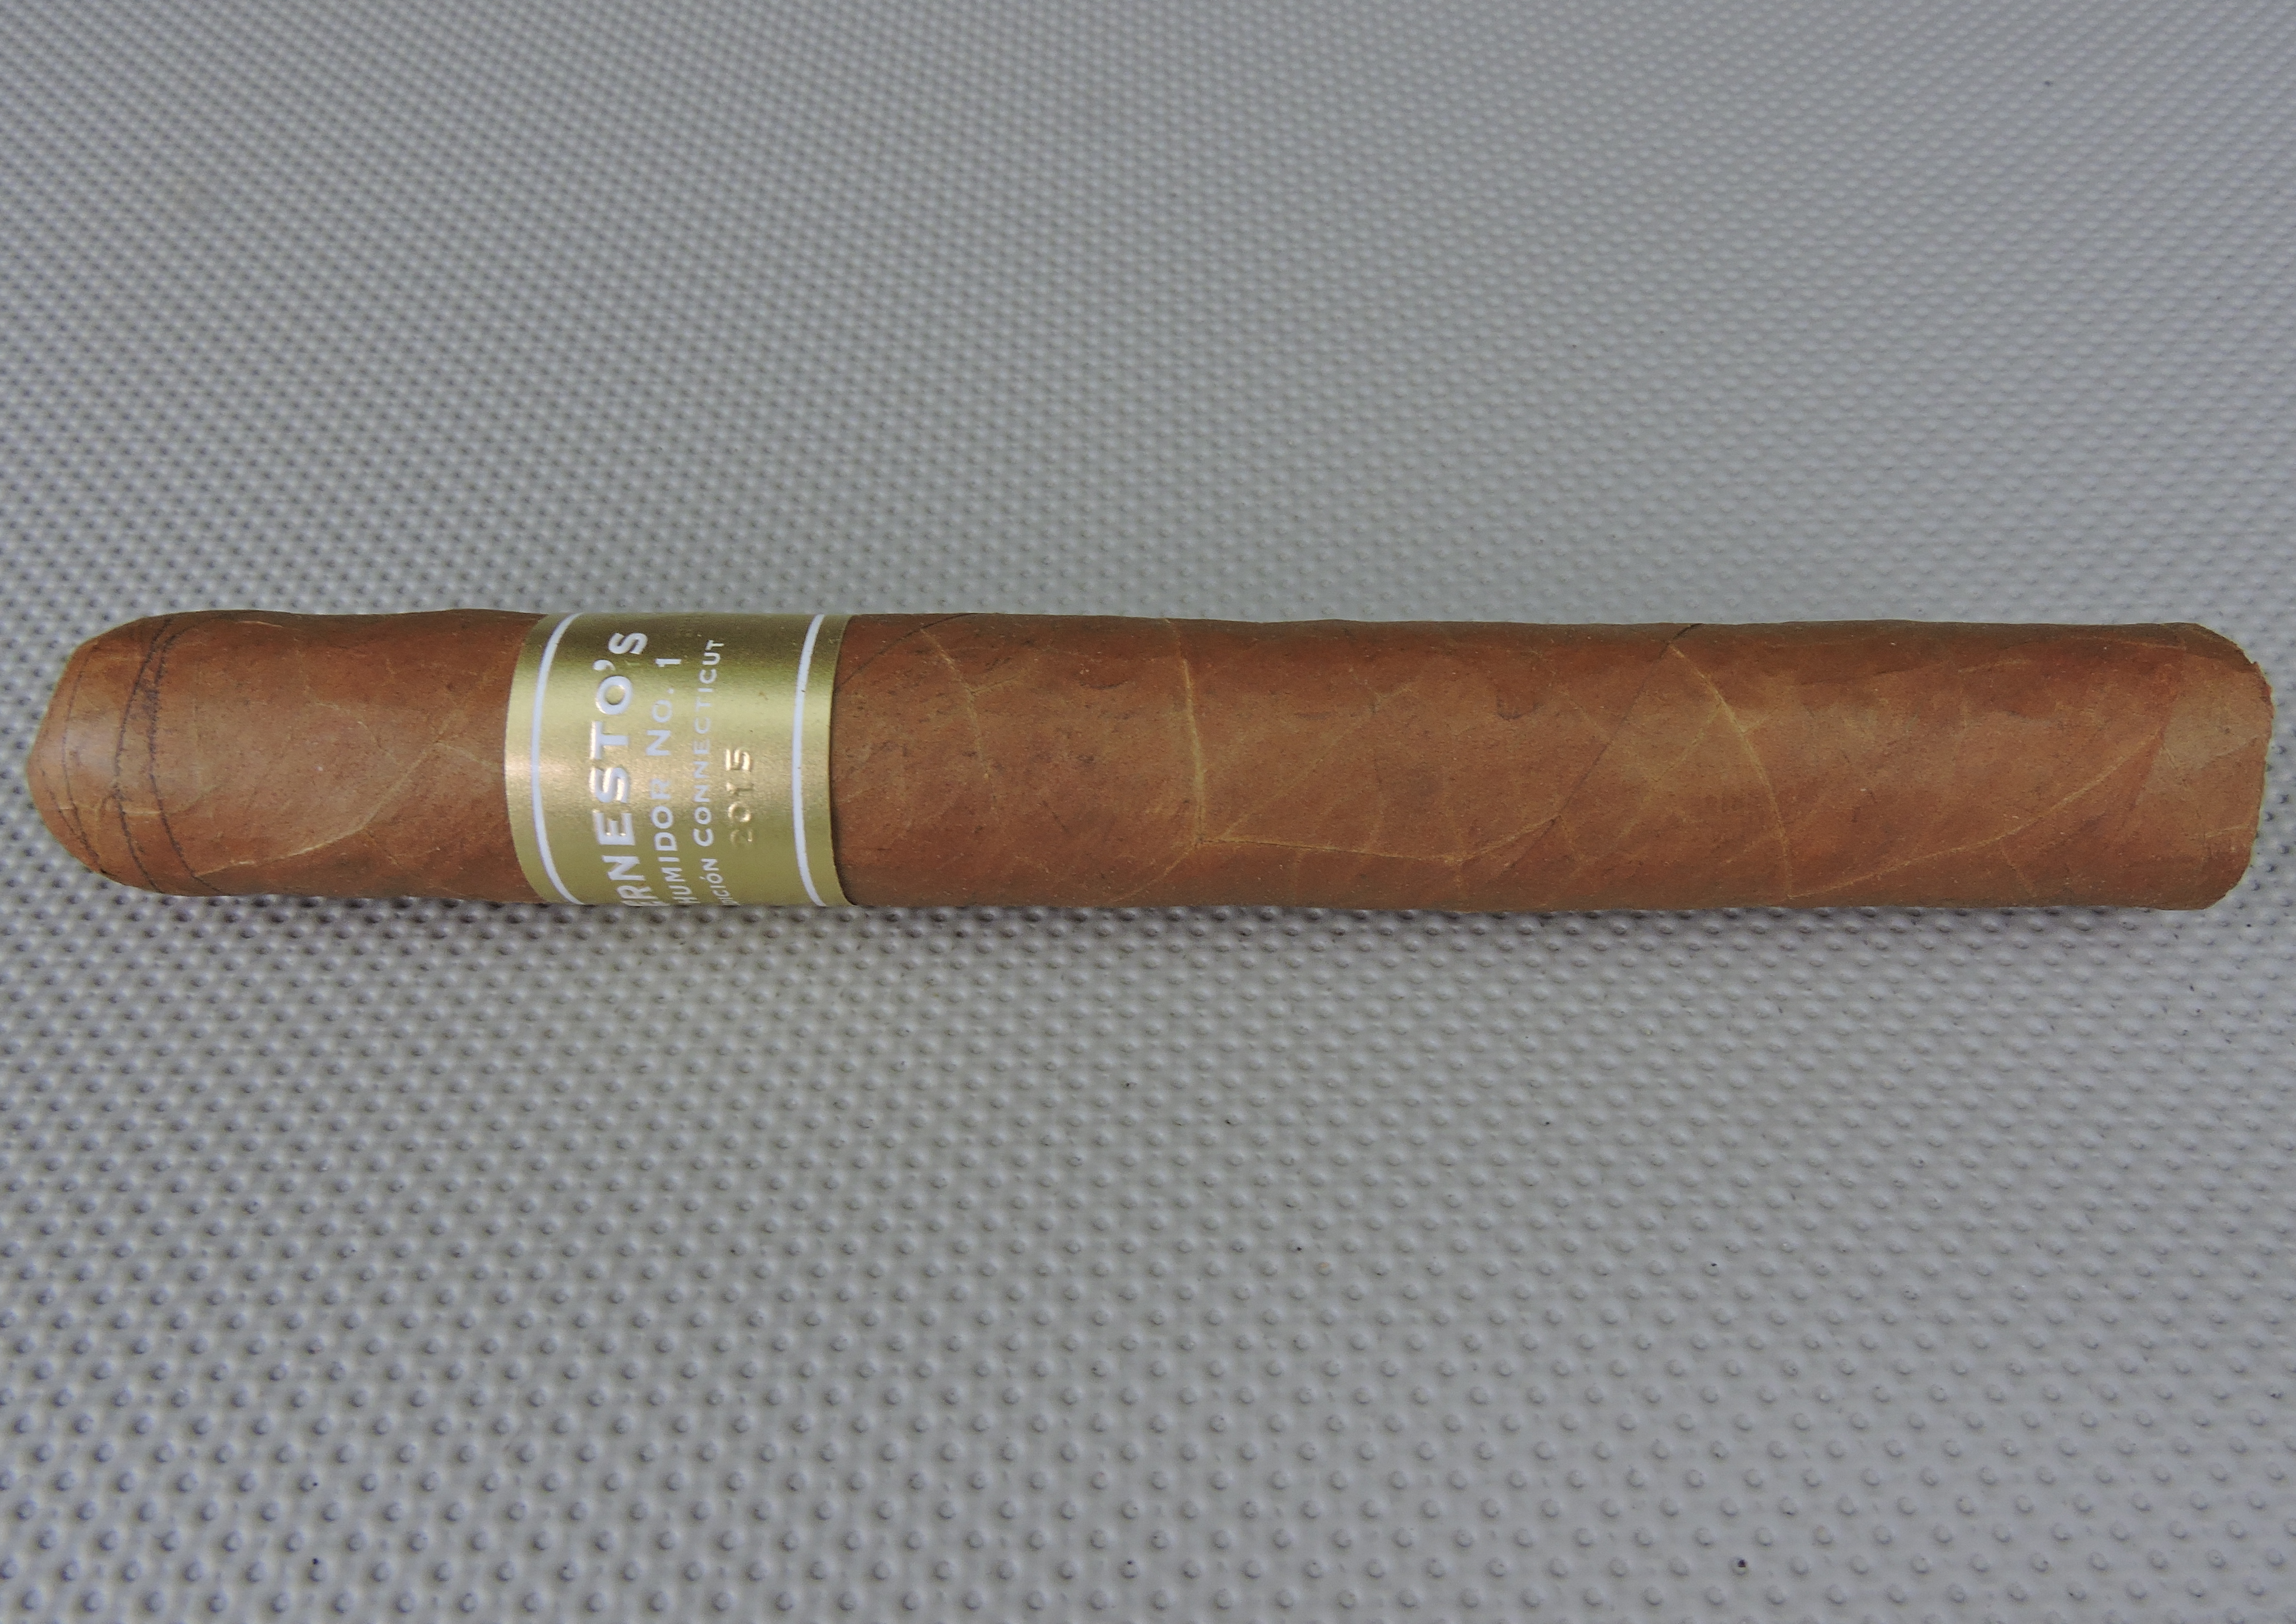 Ernesto's_Humidor_No._1_Edicion_Connecticut_2015_by_E.P. Carrillo